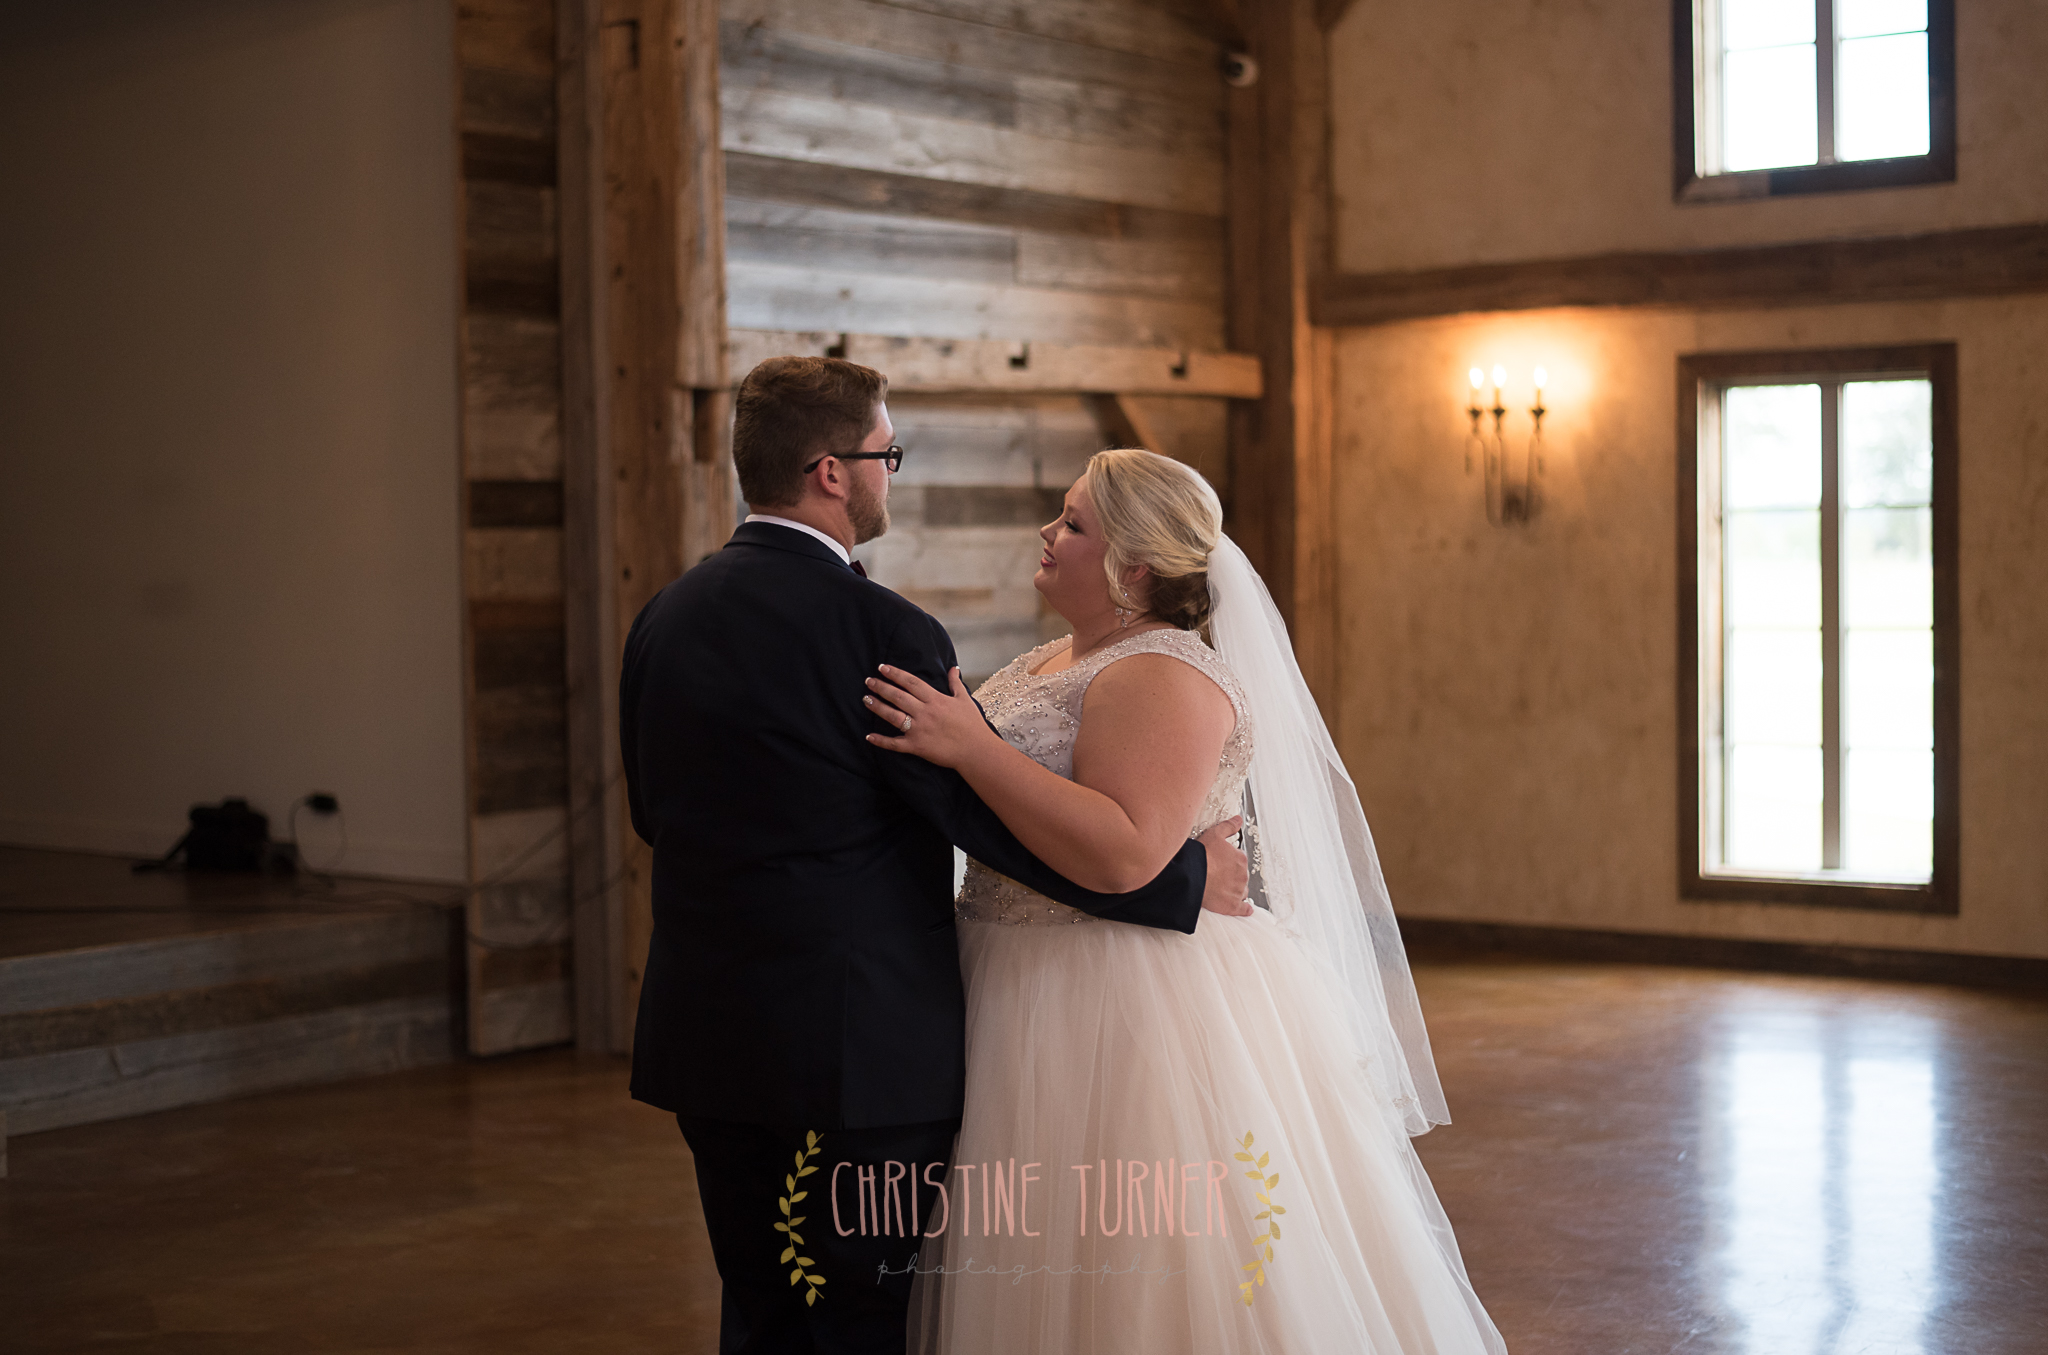 Duell Wedding (36 of 54)